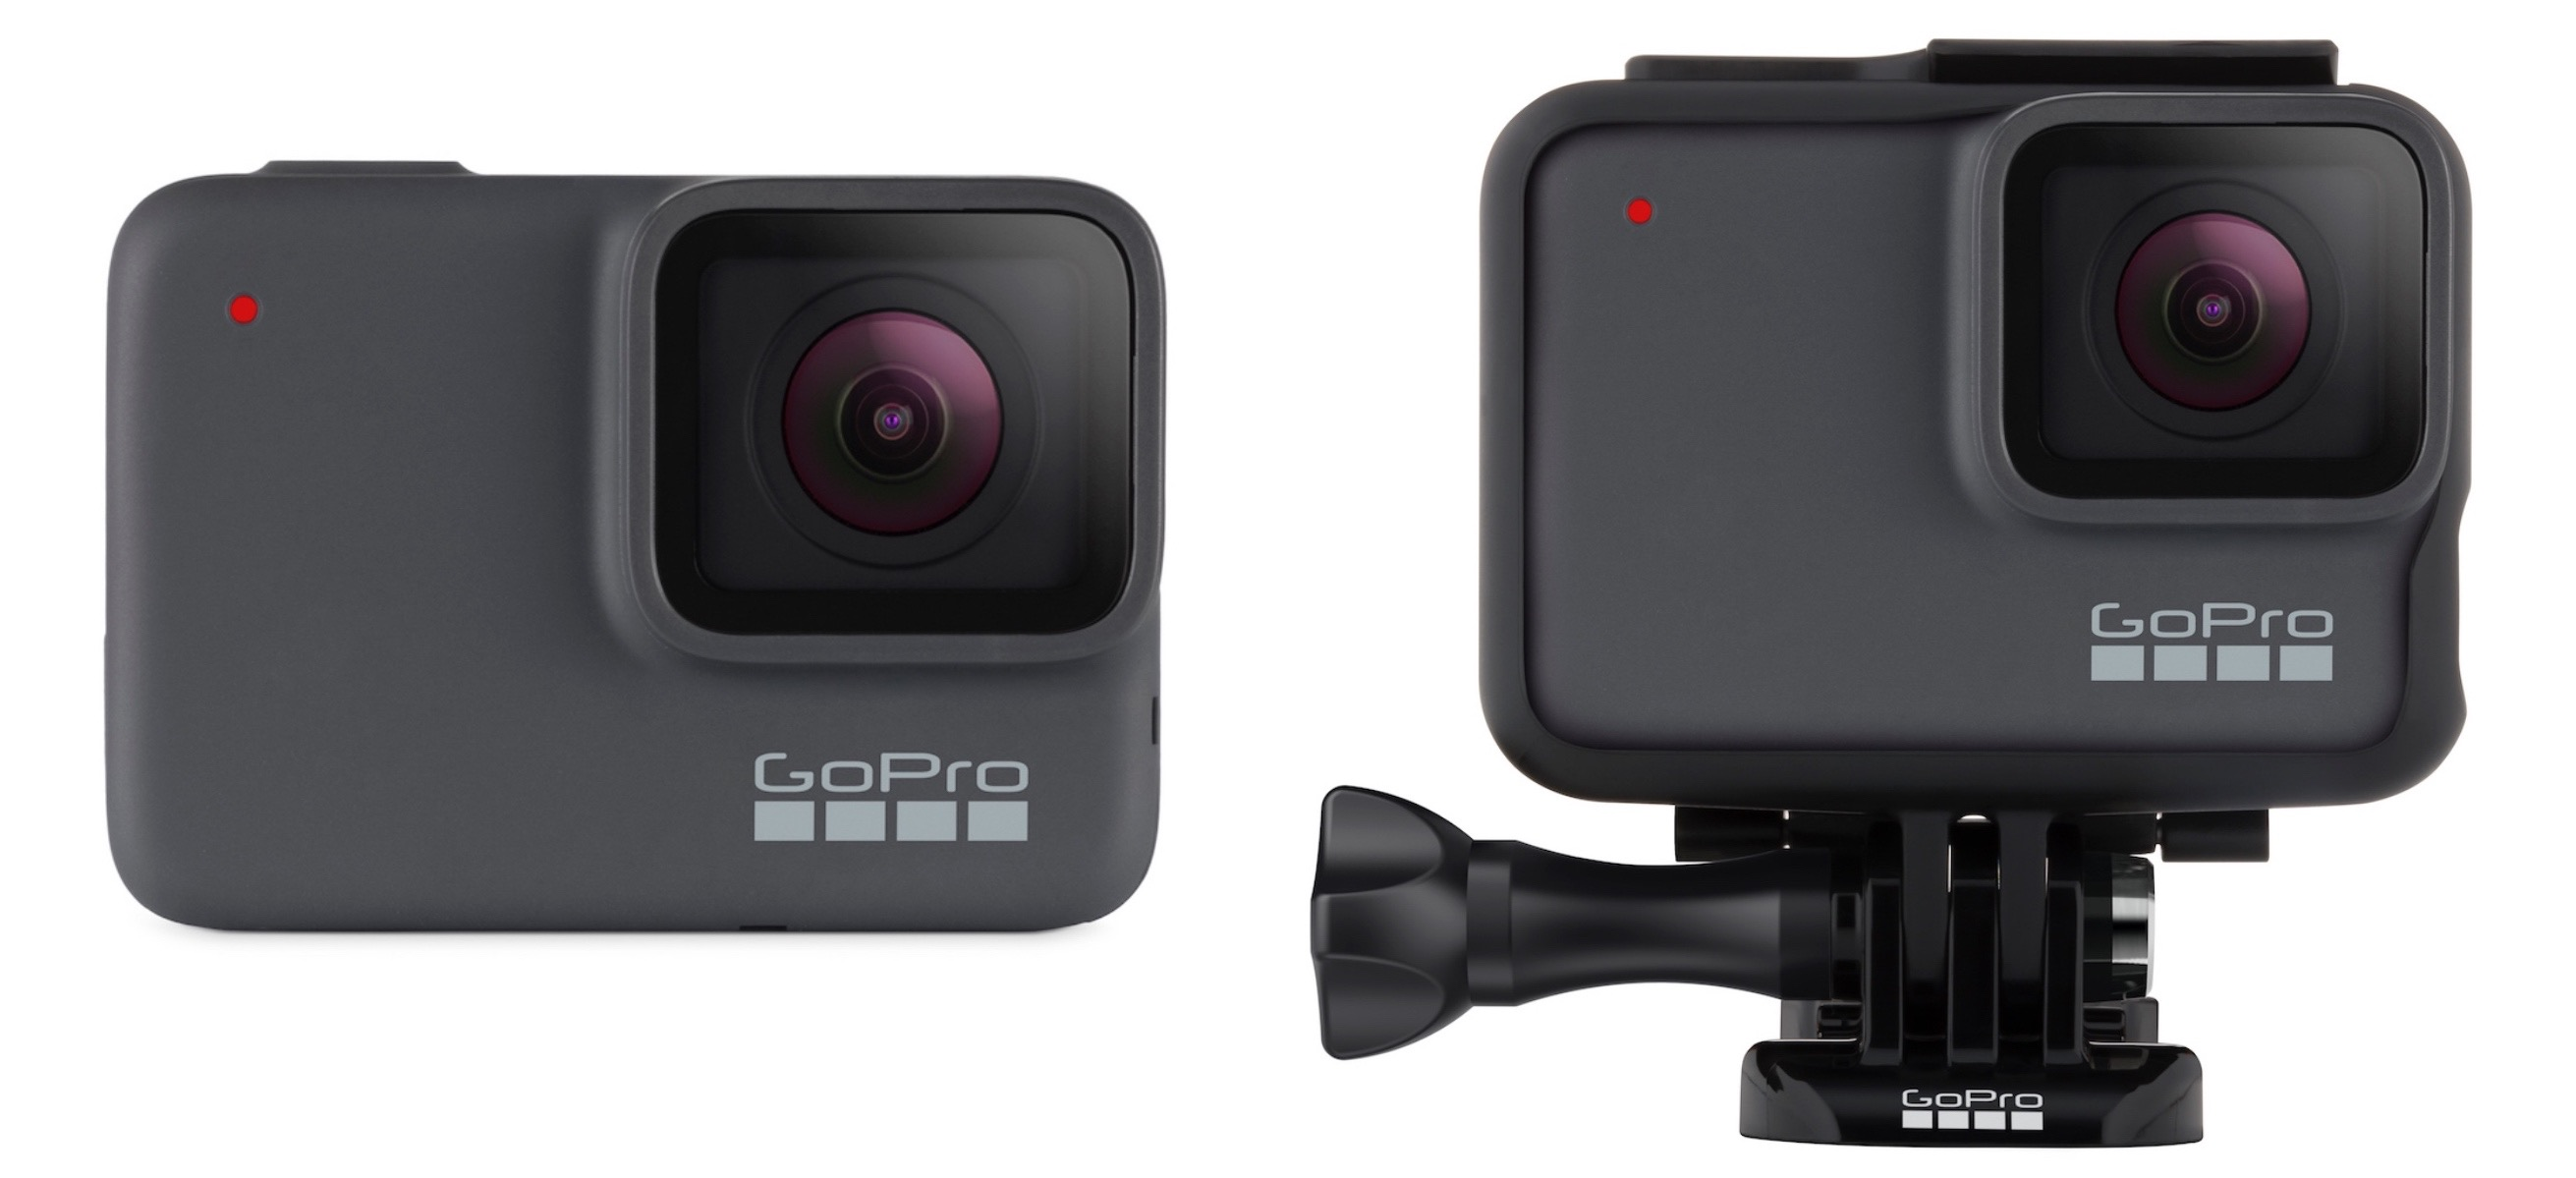 The new GoPro HERO7 Silver